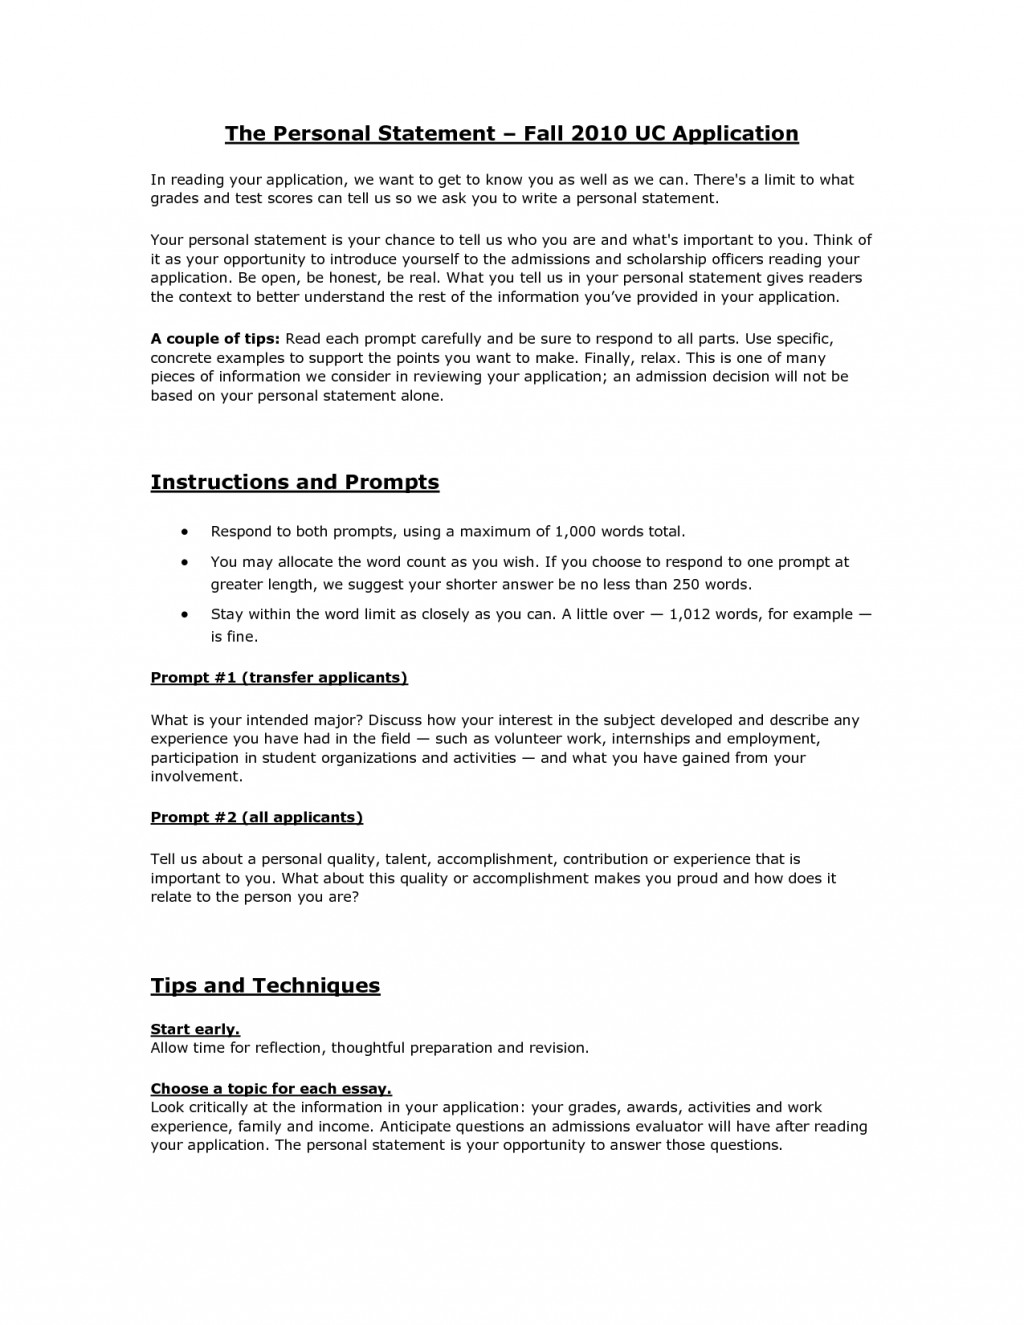 006 Uc Essay Prompts Example Transfer Cover Letter Essays Application Examples Personal Statement Iip Imposing 2017 Boulder Prompt Davis Large